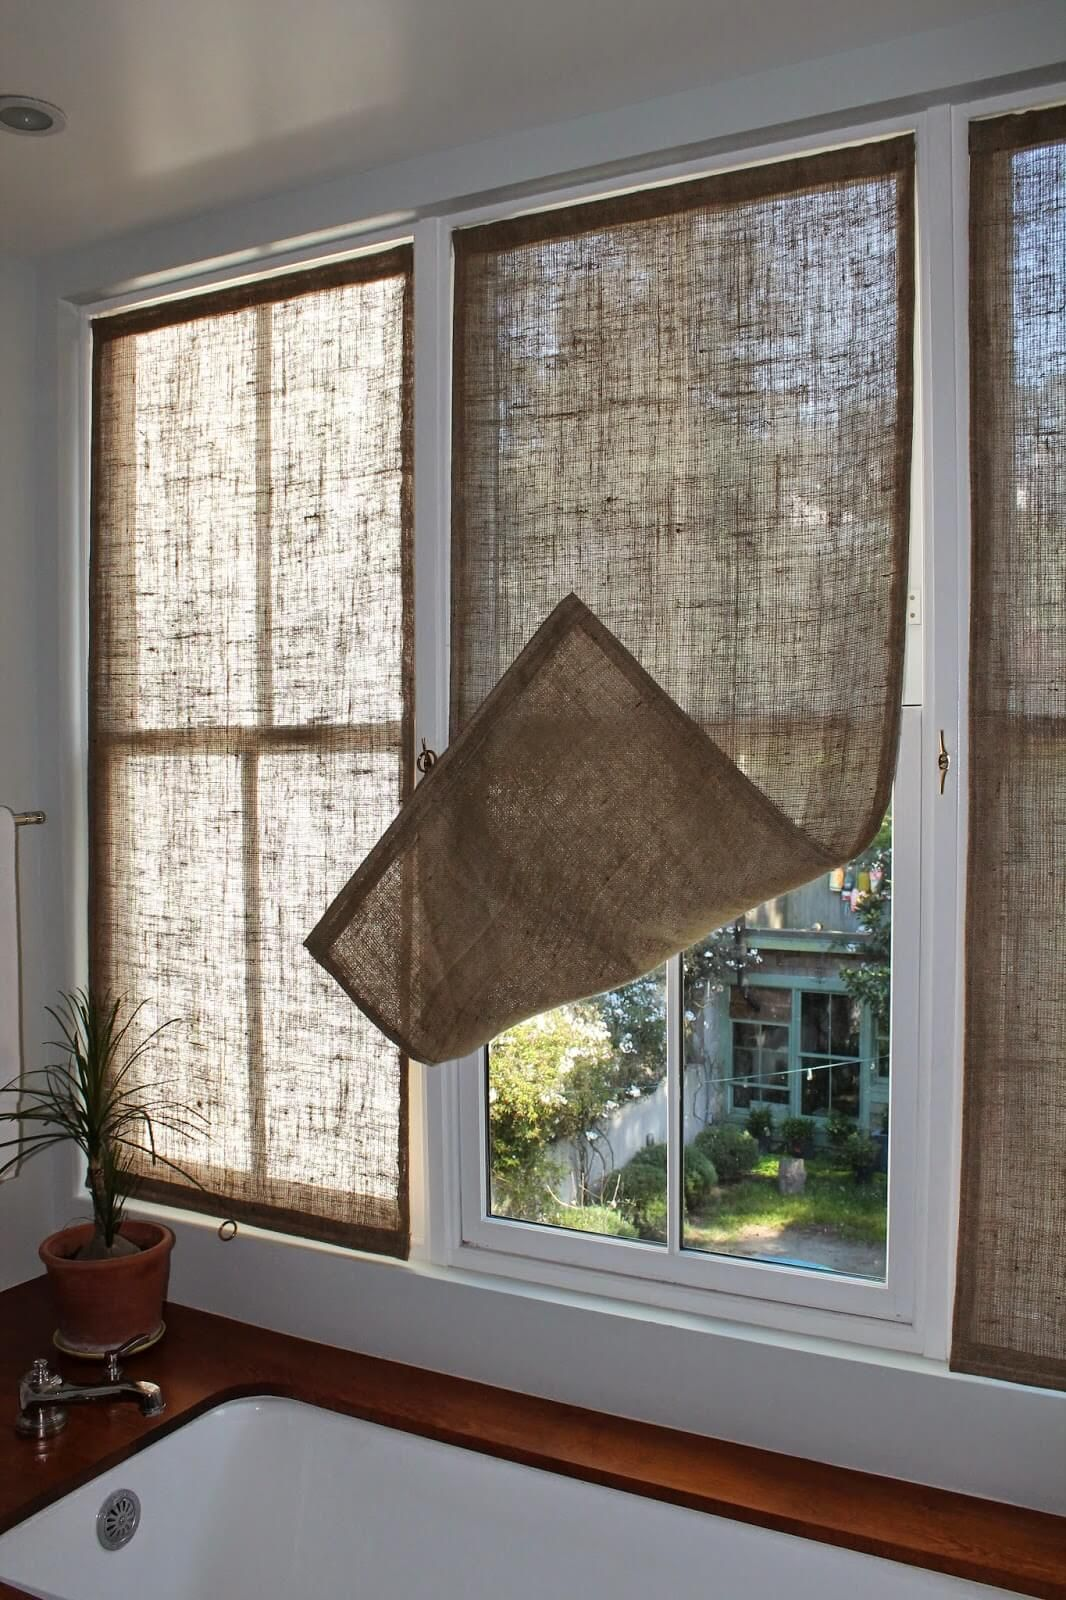 Easy jute curtains with side hooks -  Easy jute curtains with side hooks  - #BurberryHandbags #curtains #DesignerClothing #Easy #FashionDesigners #GucciPurses #hooks #jute #side